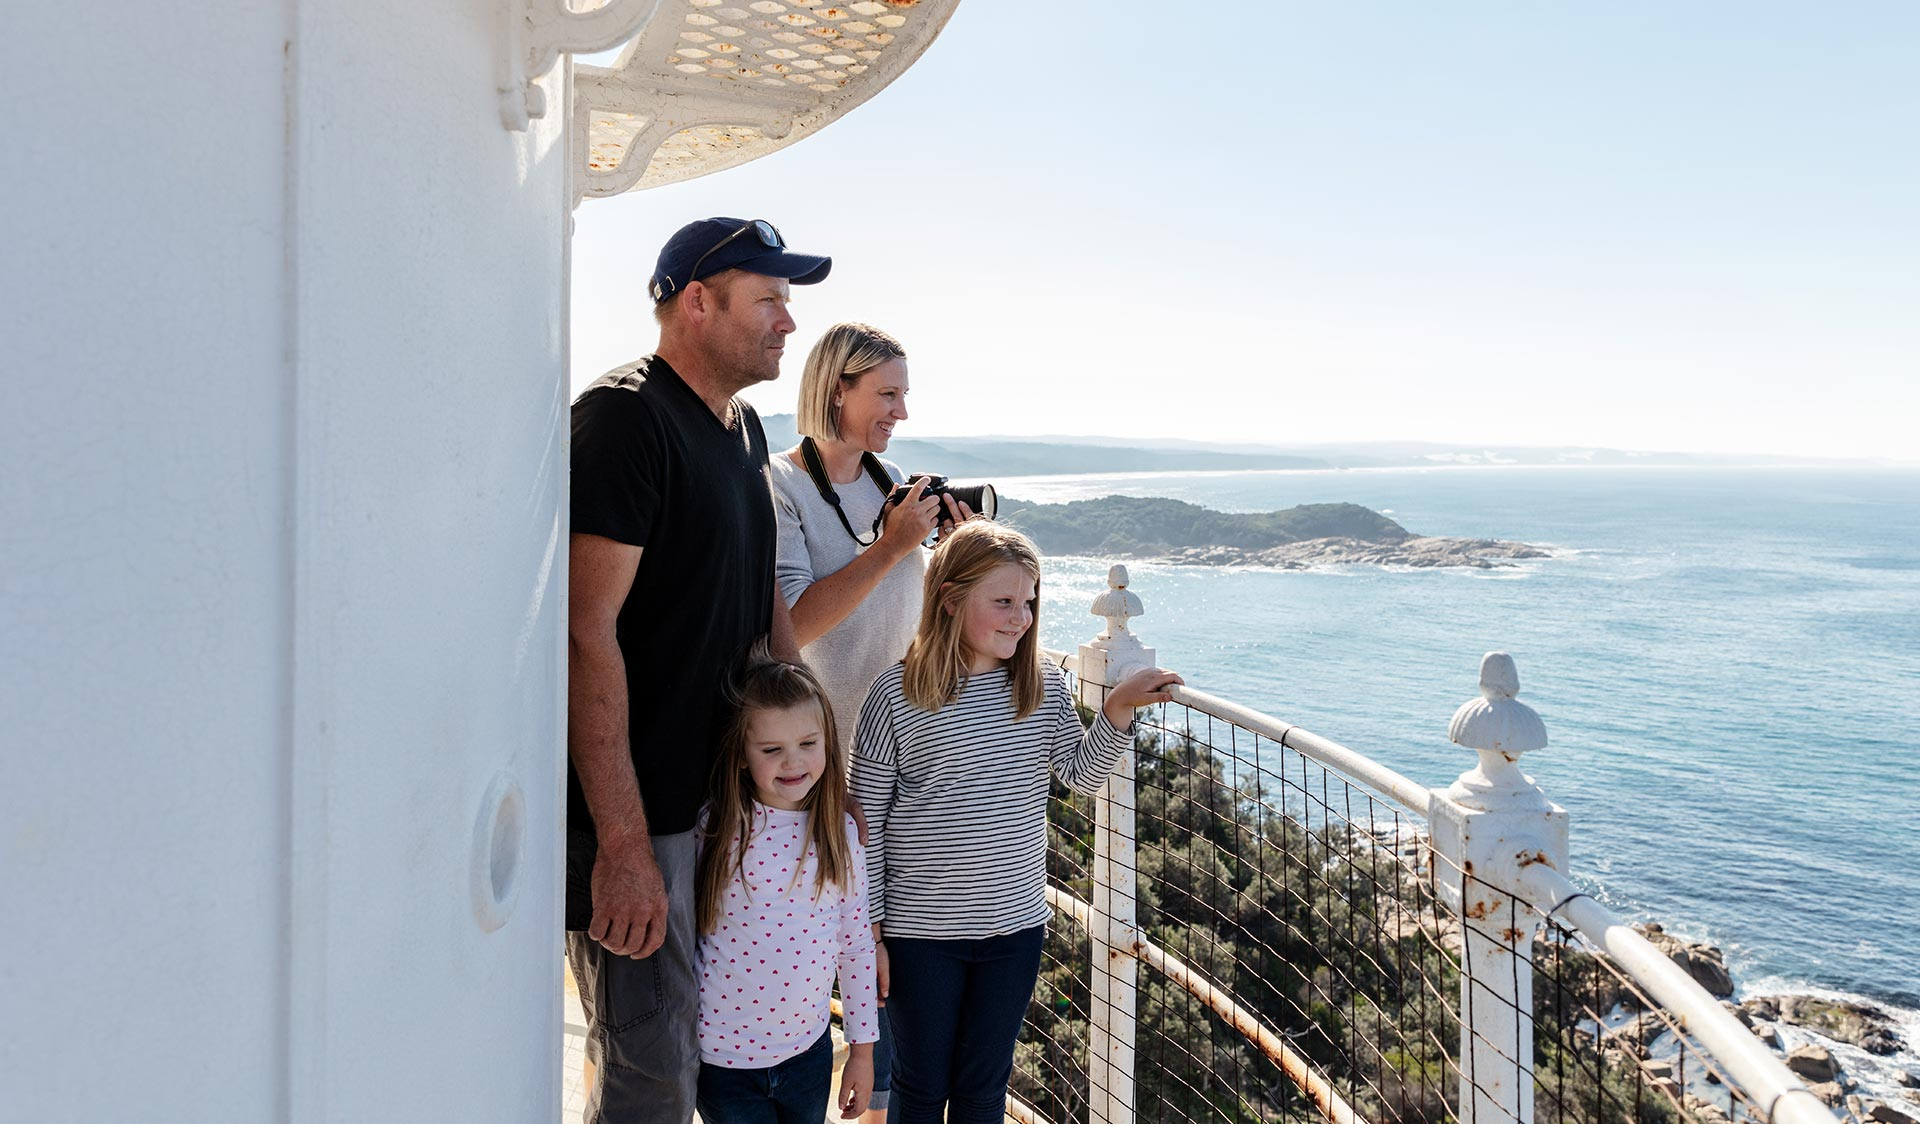 A mother, father and their two young daughts gaze out at the sea from the lookout point of the lighthouse.